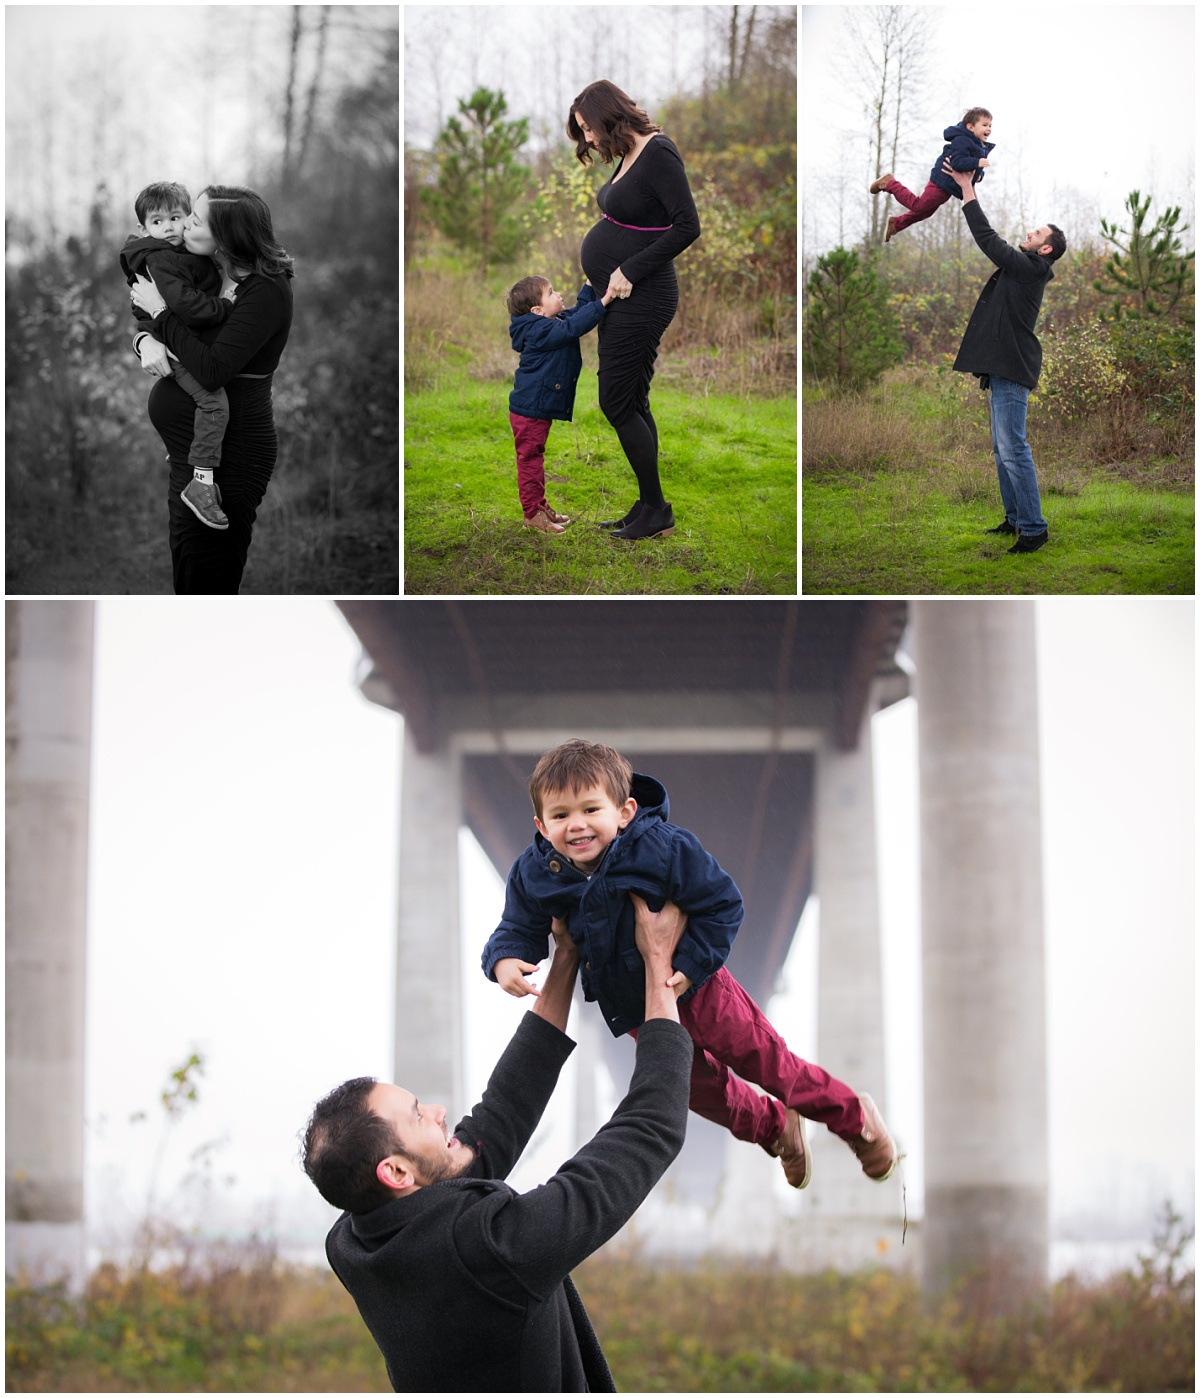 Amazing Day Photography - Maternity Photographer - Maple Ridge Maternity Photos - Bump Photos - Langley Family Photographer (4).jpg